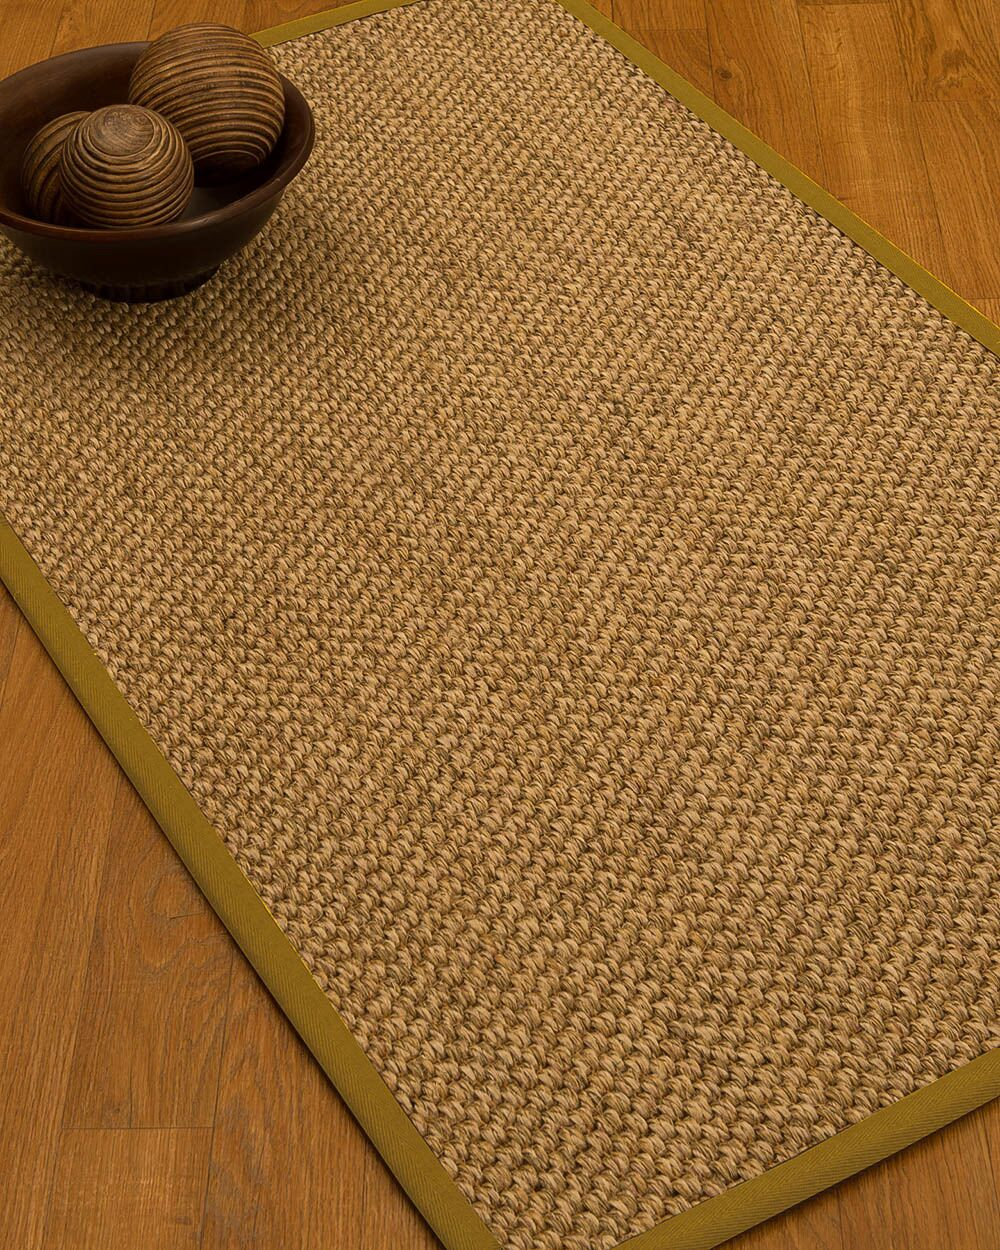 Heier Border Hand-Woven Beige/Tan Area Rug Rug Size: Rectangle 4' x 6', Rug Pad Included: Yes